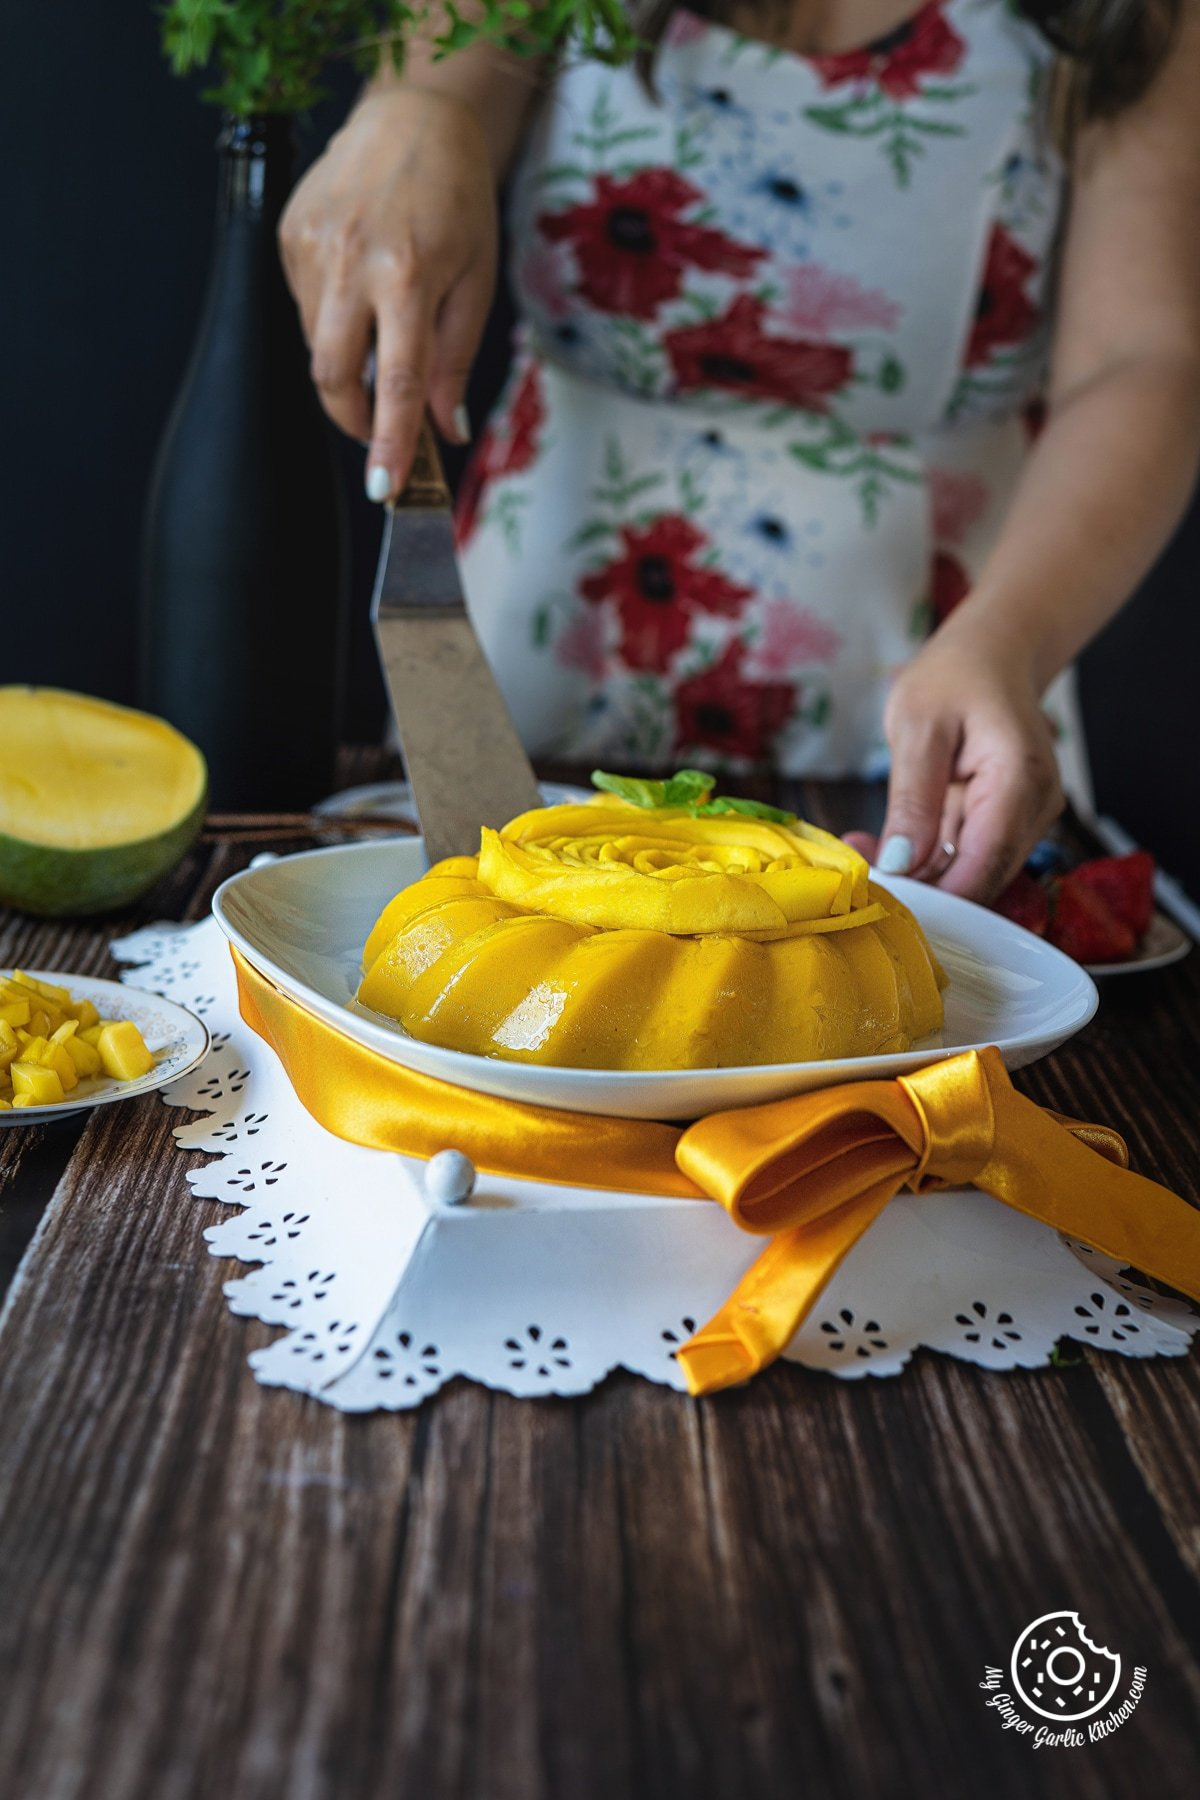 a female is holding a cake lifting spatula with one hand and holding mango pudding plate with the other hand